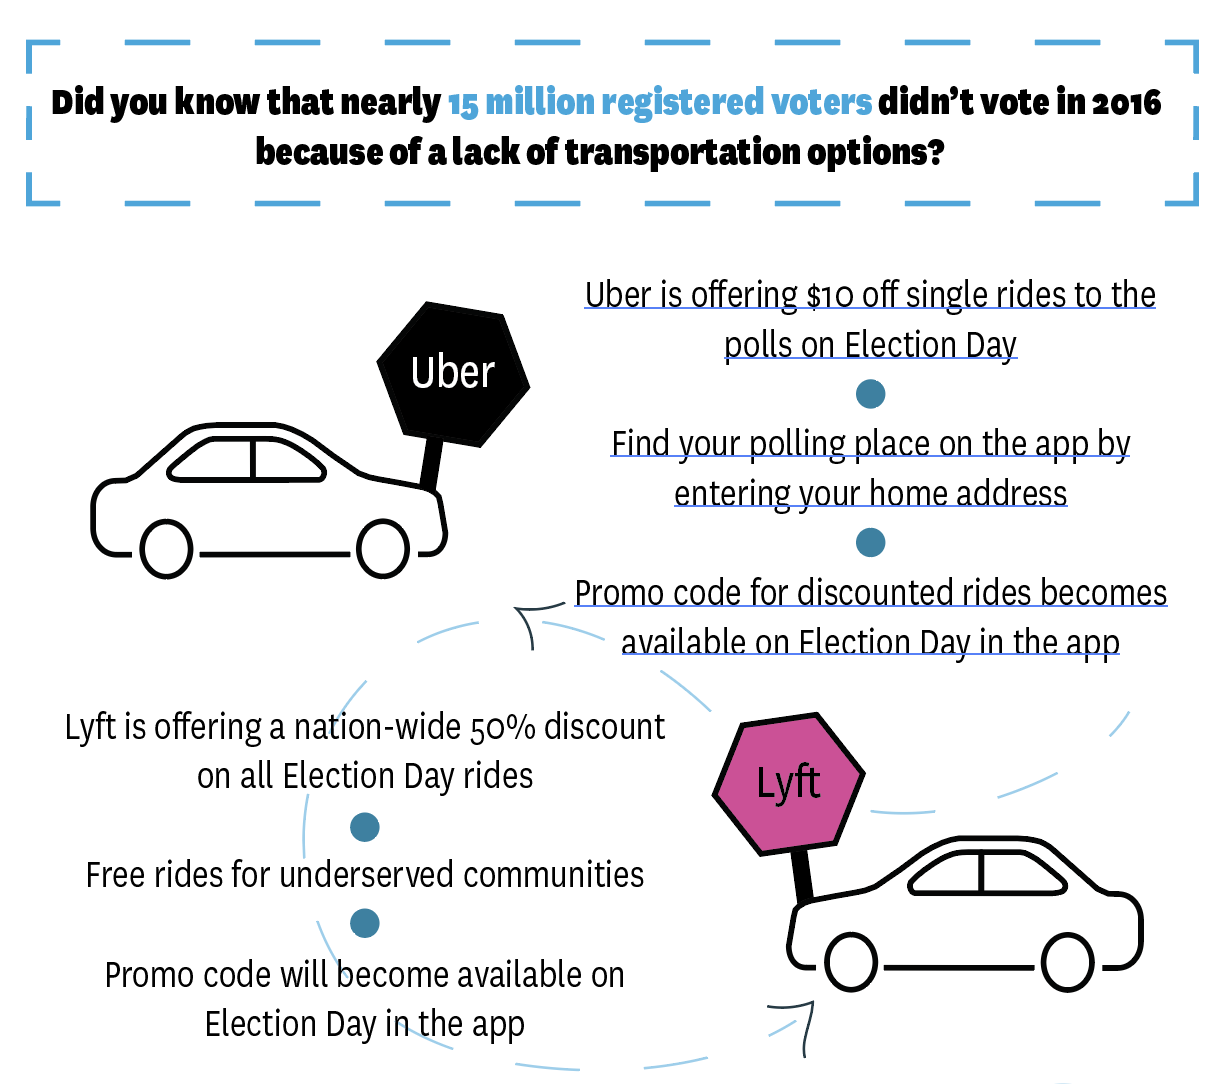 transitscreen-mobility-options-voter-polling-options-transit